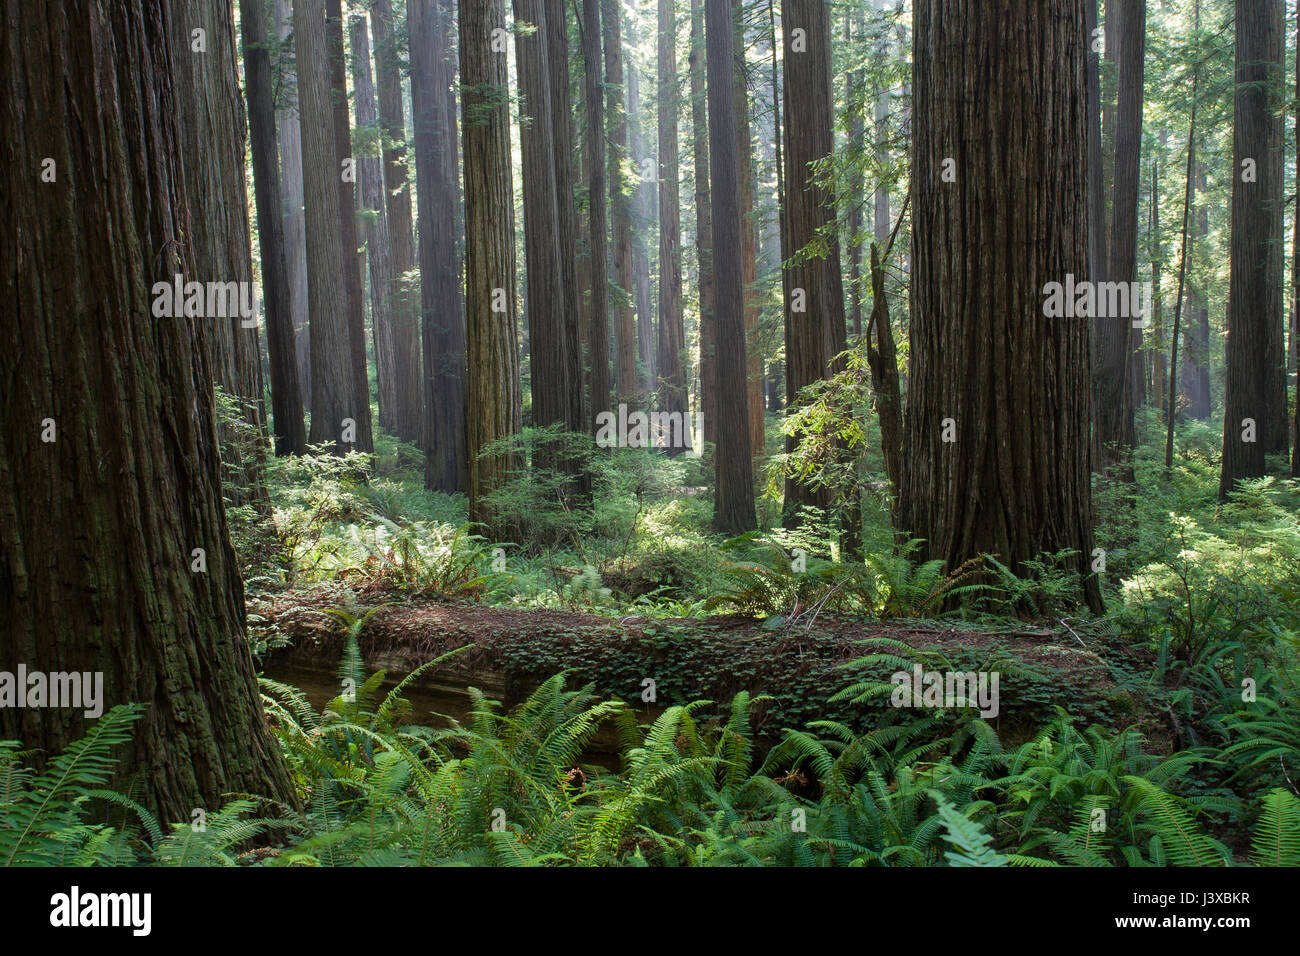 Immense old-growth California Redwoods in Redwood National Park, California, USA. - Stock Image